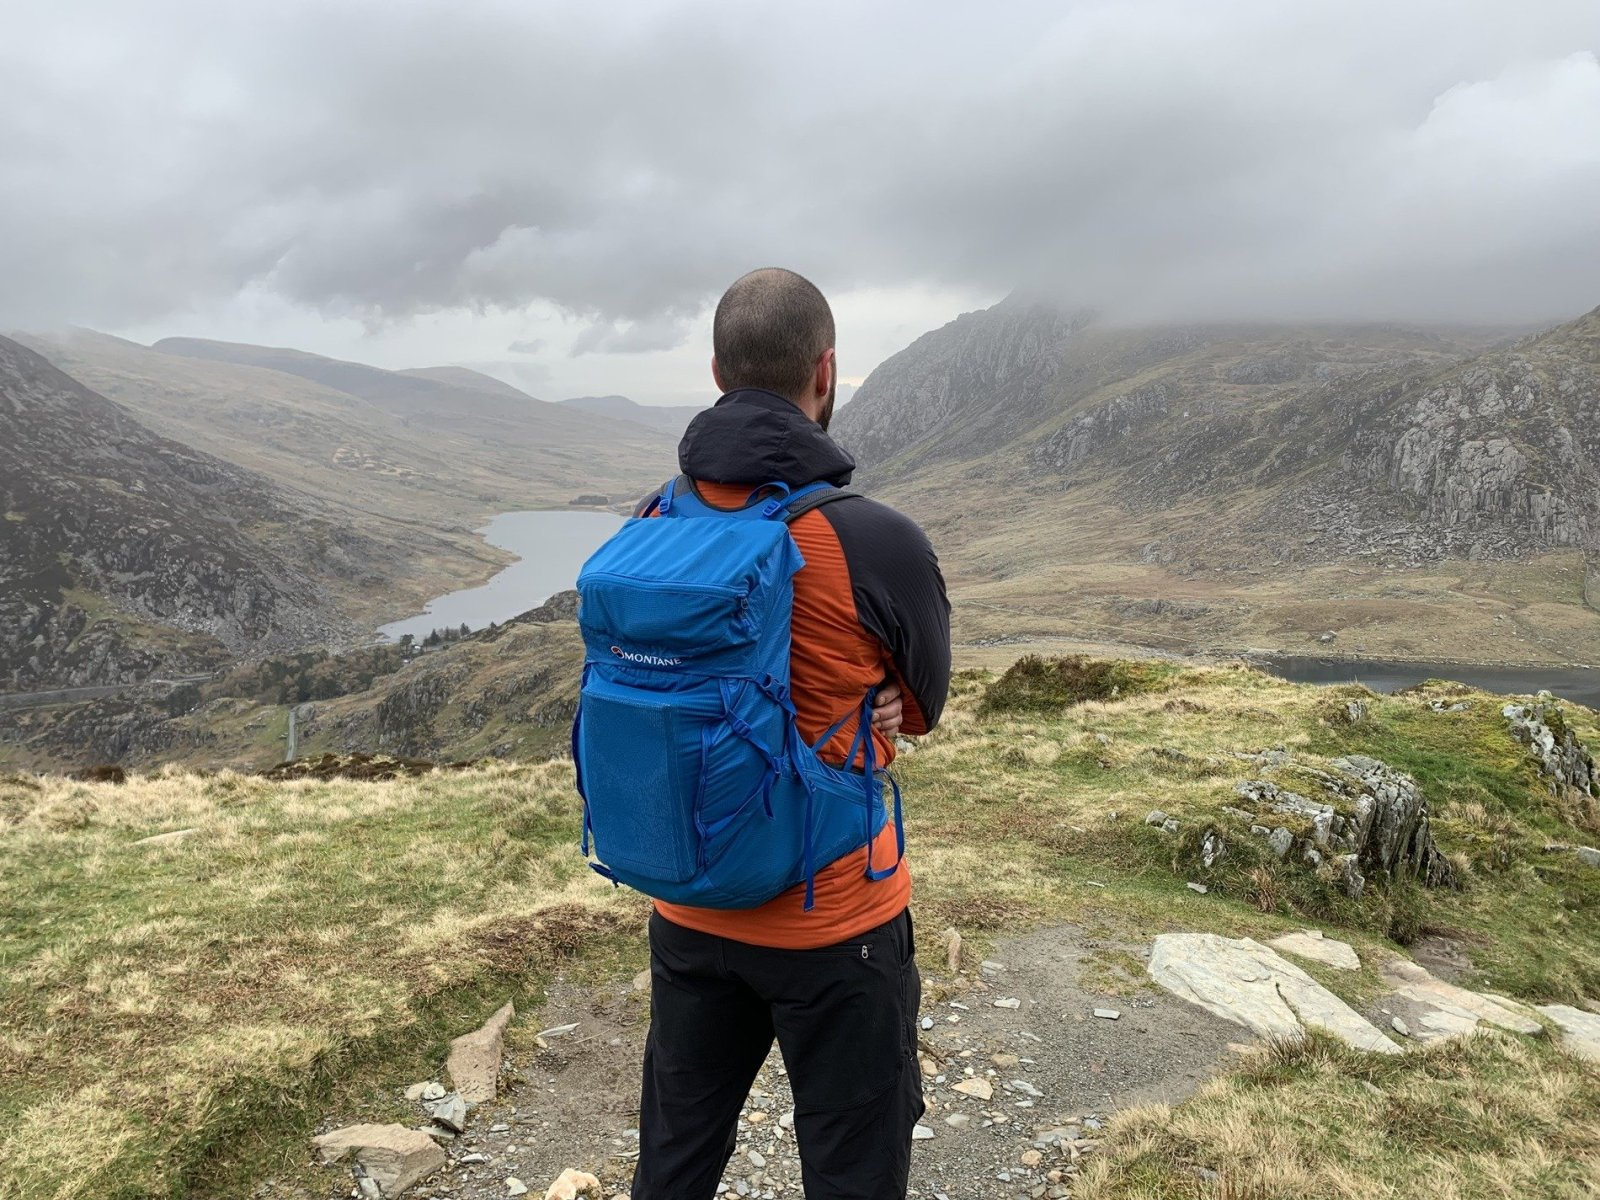 Montane Trailblazer 30 Rucksack Review